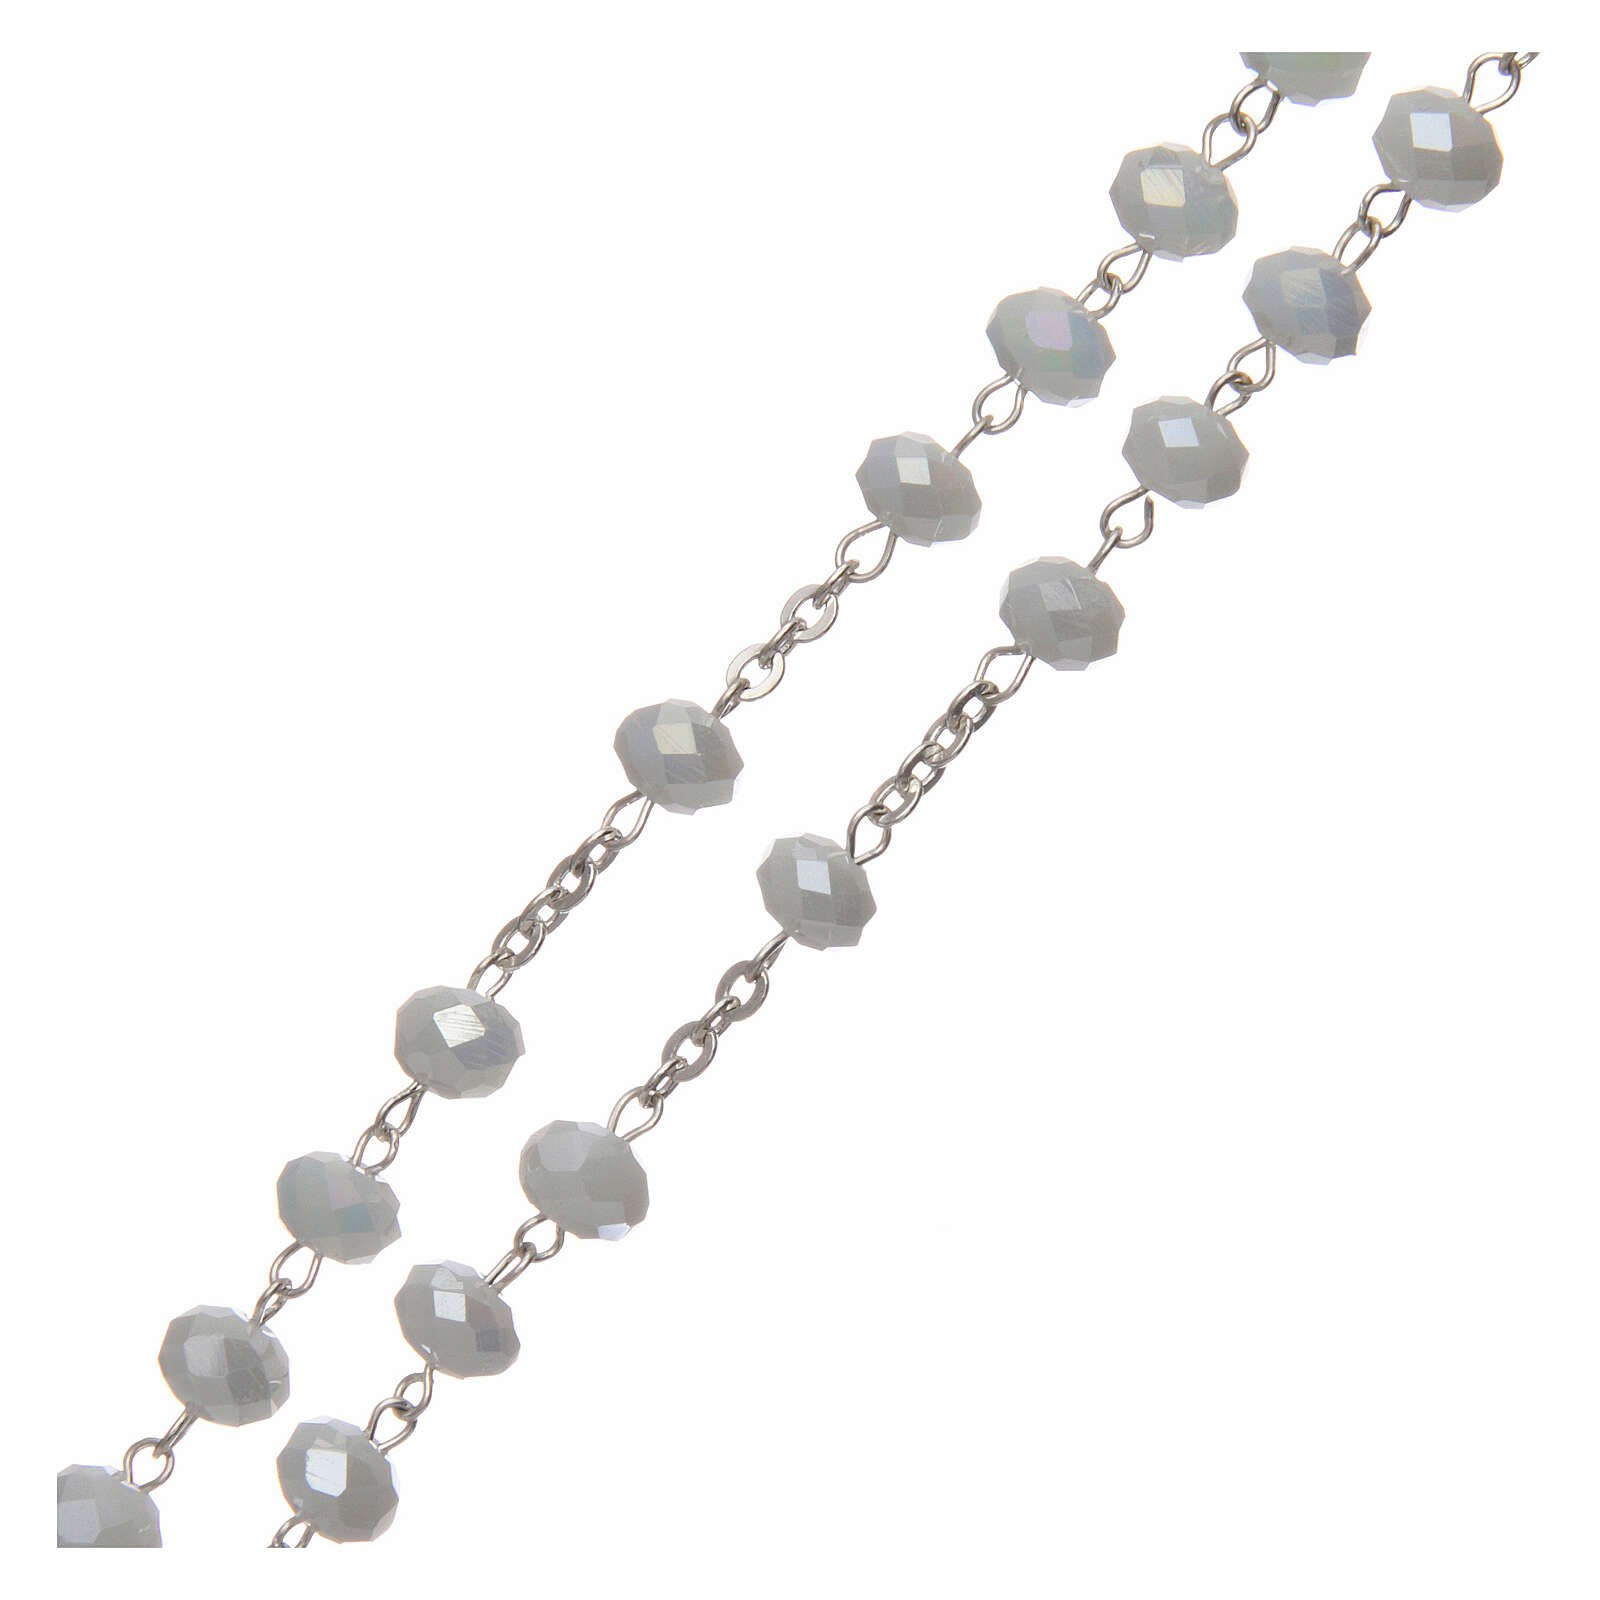 Crystal rosary white matte beads 6 mm 925 silver 4